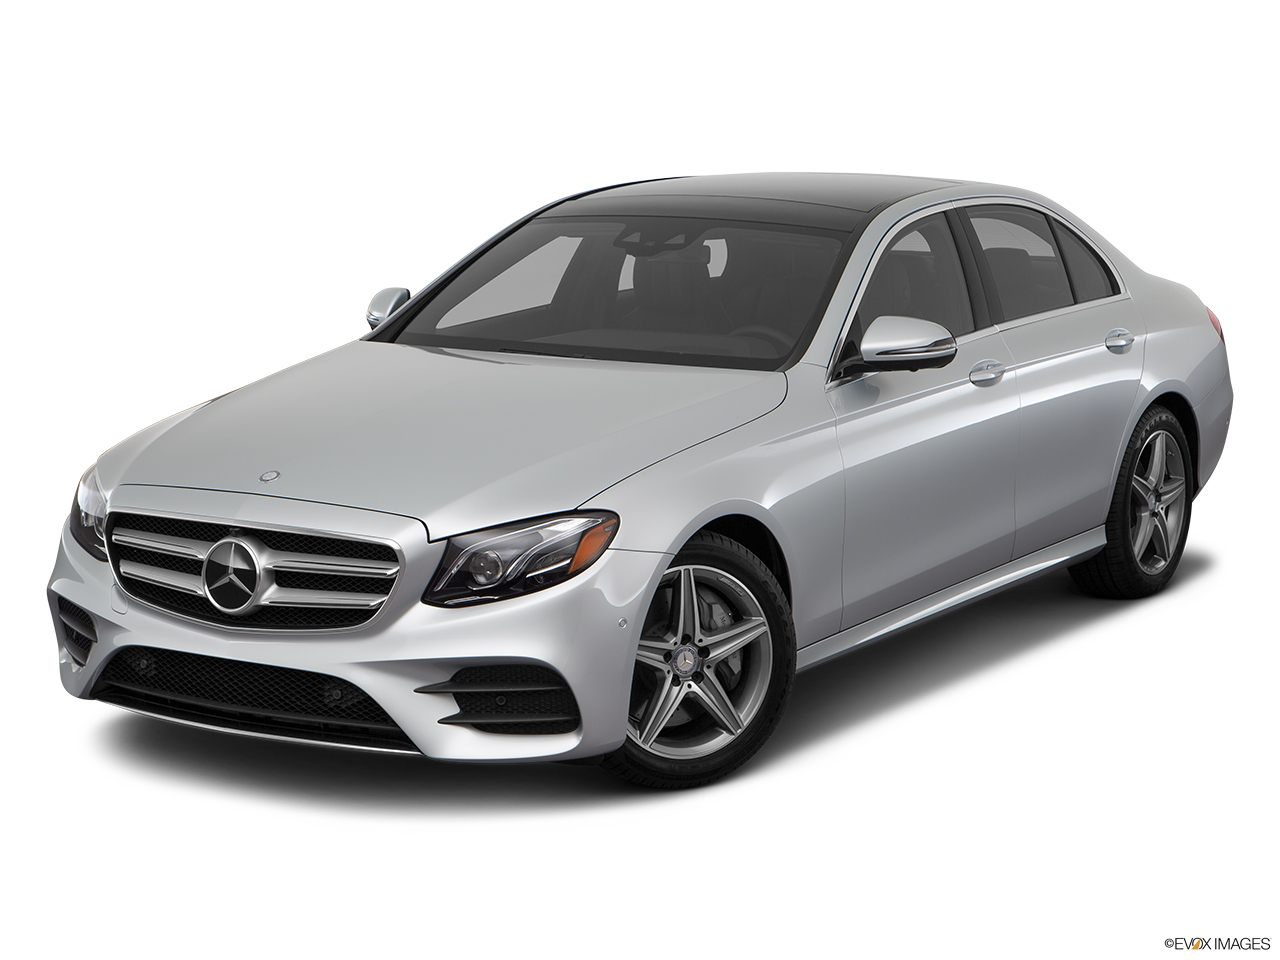 Mercedes benz e class saloon price in egypt new mercedes for 2017 mercedes benz e350 price